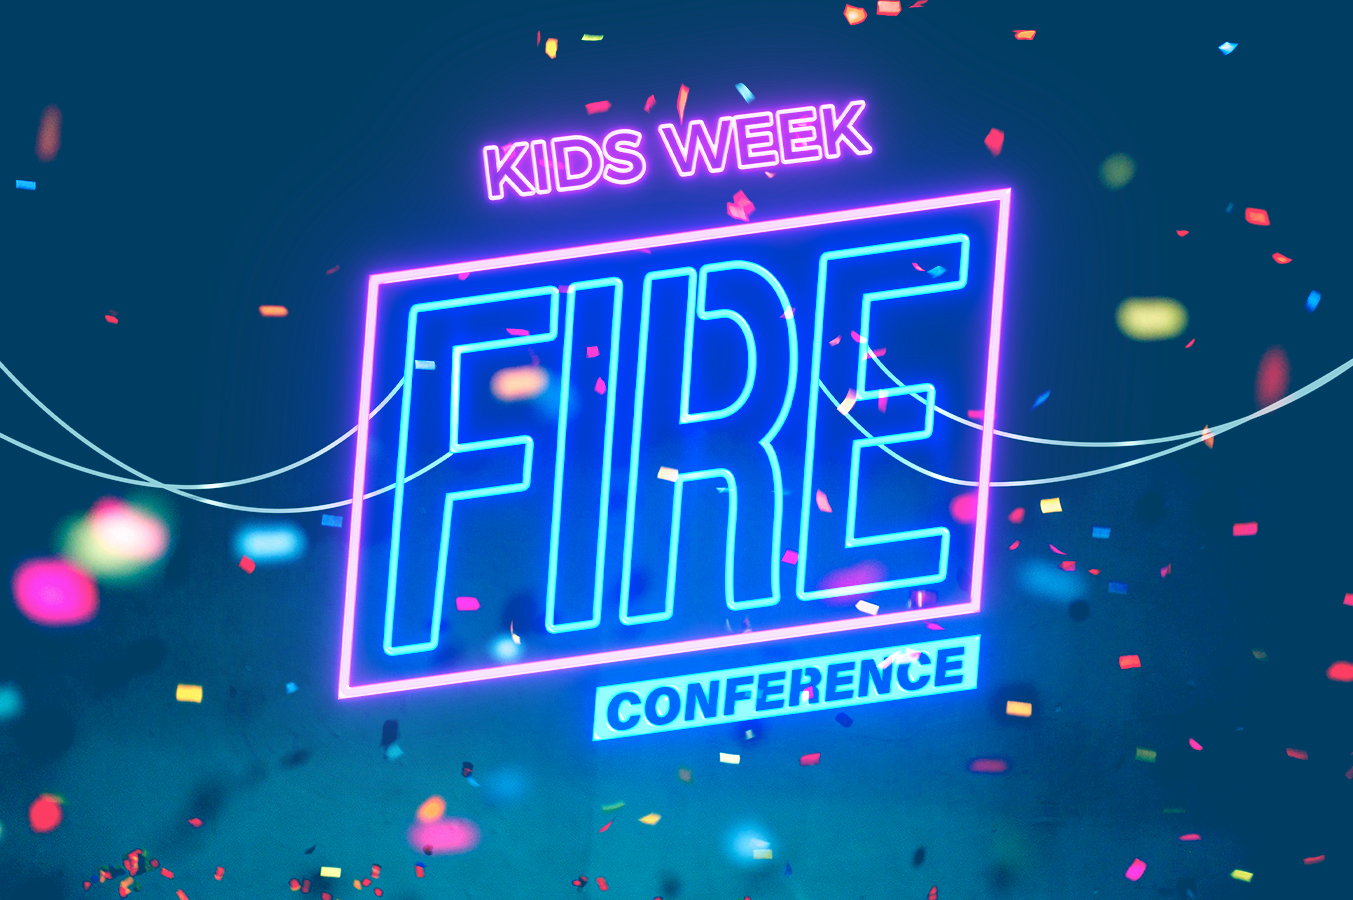 Fire Conference: Kids Week